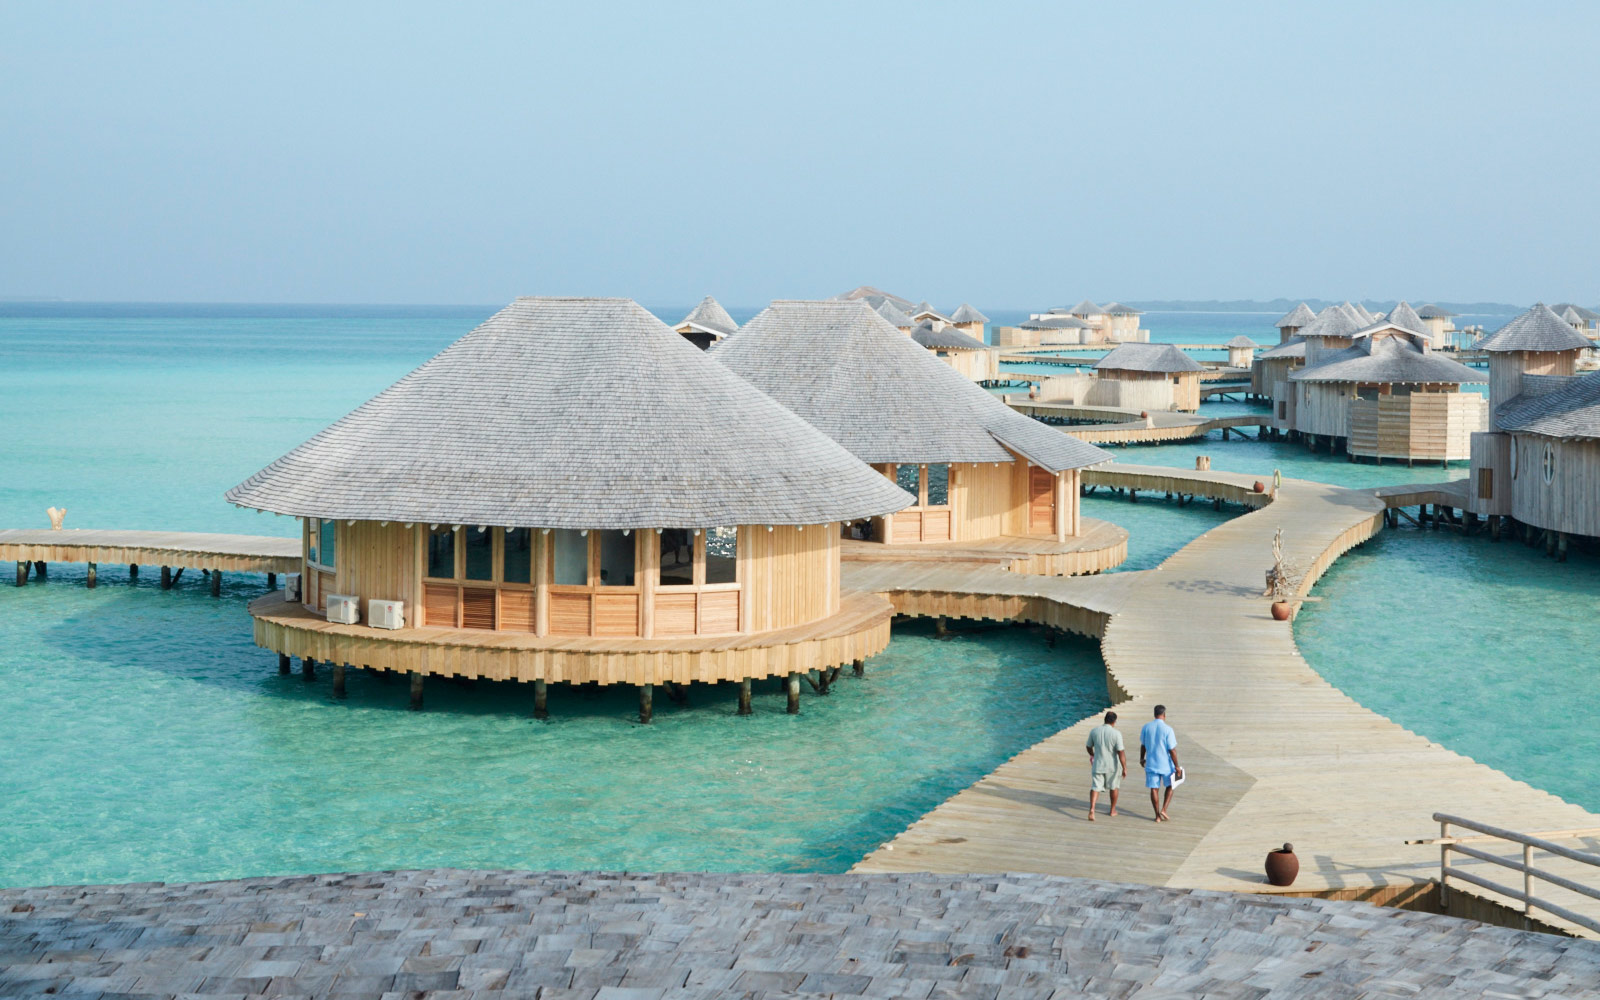 Most Popular Holiday Destinations of the Decade!